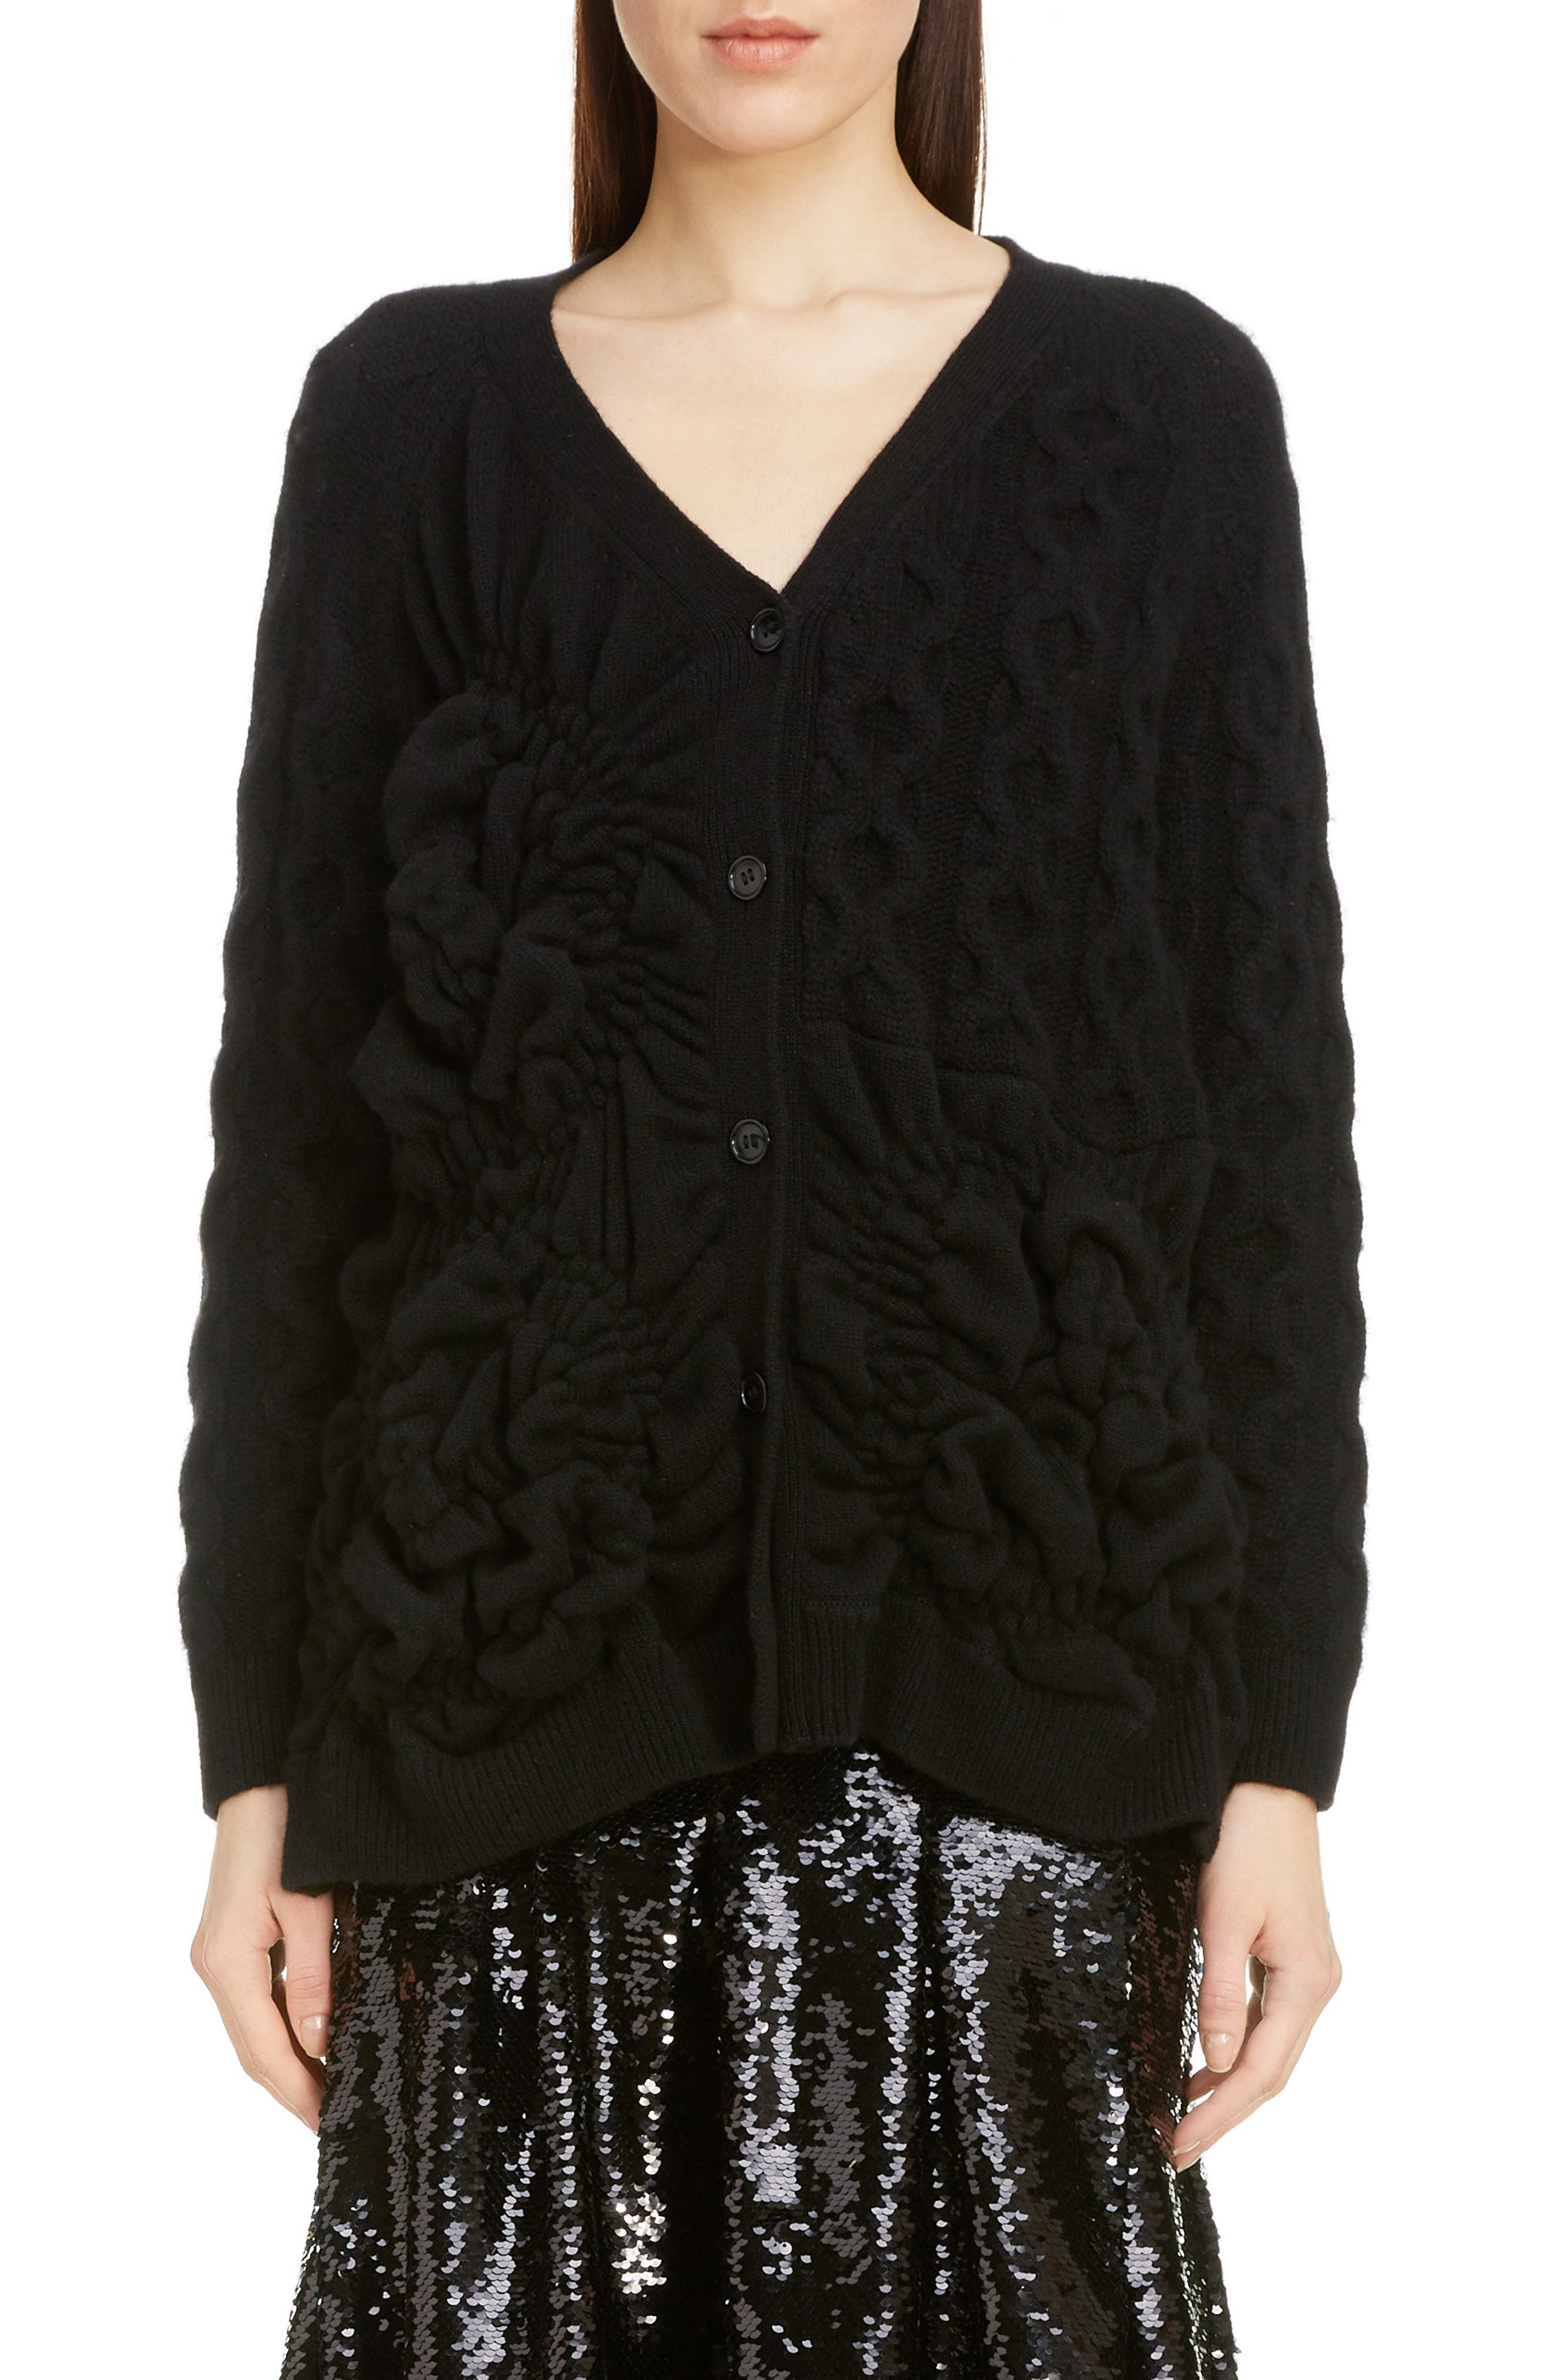 Simone Rocha Tops Oversize Cashmere Blend Cardigan